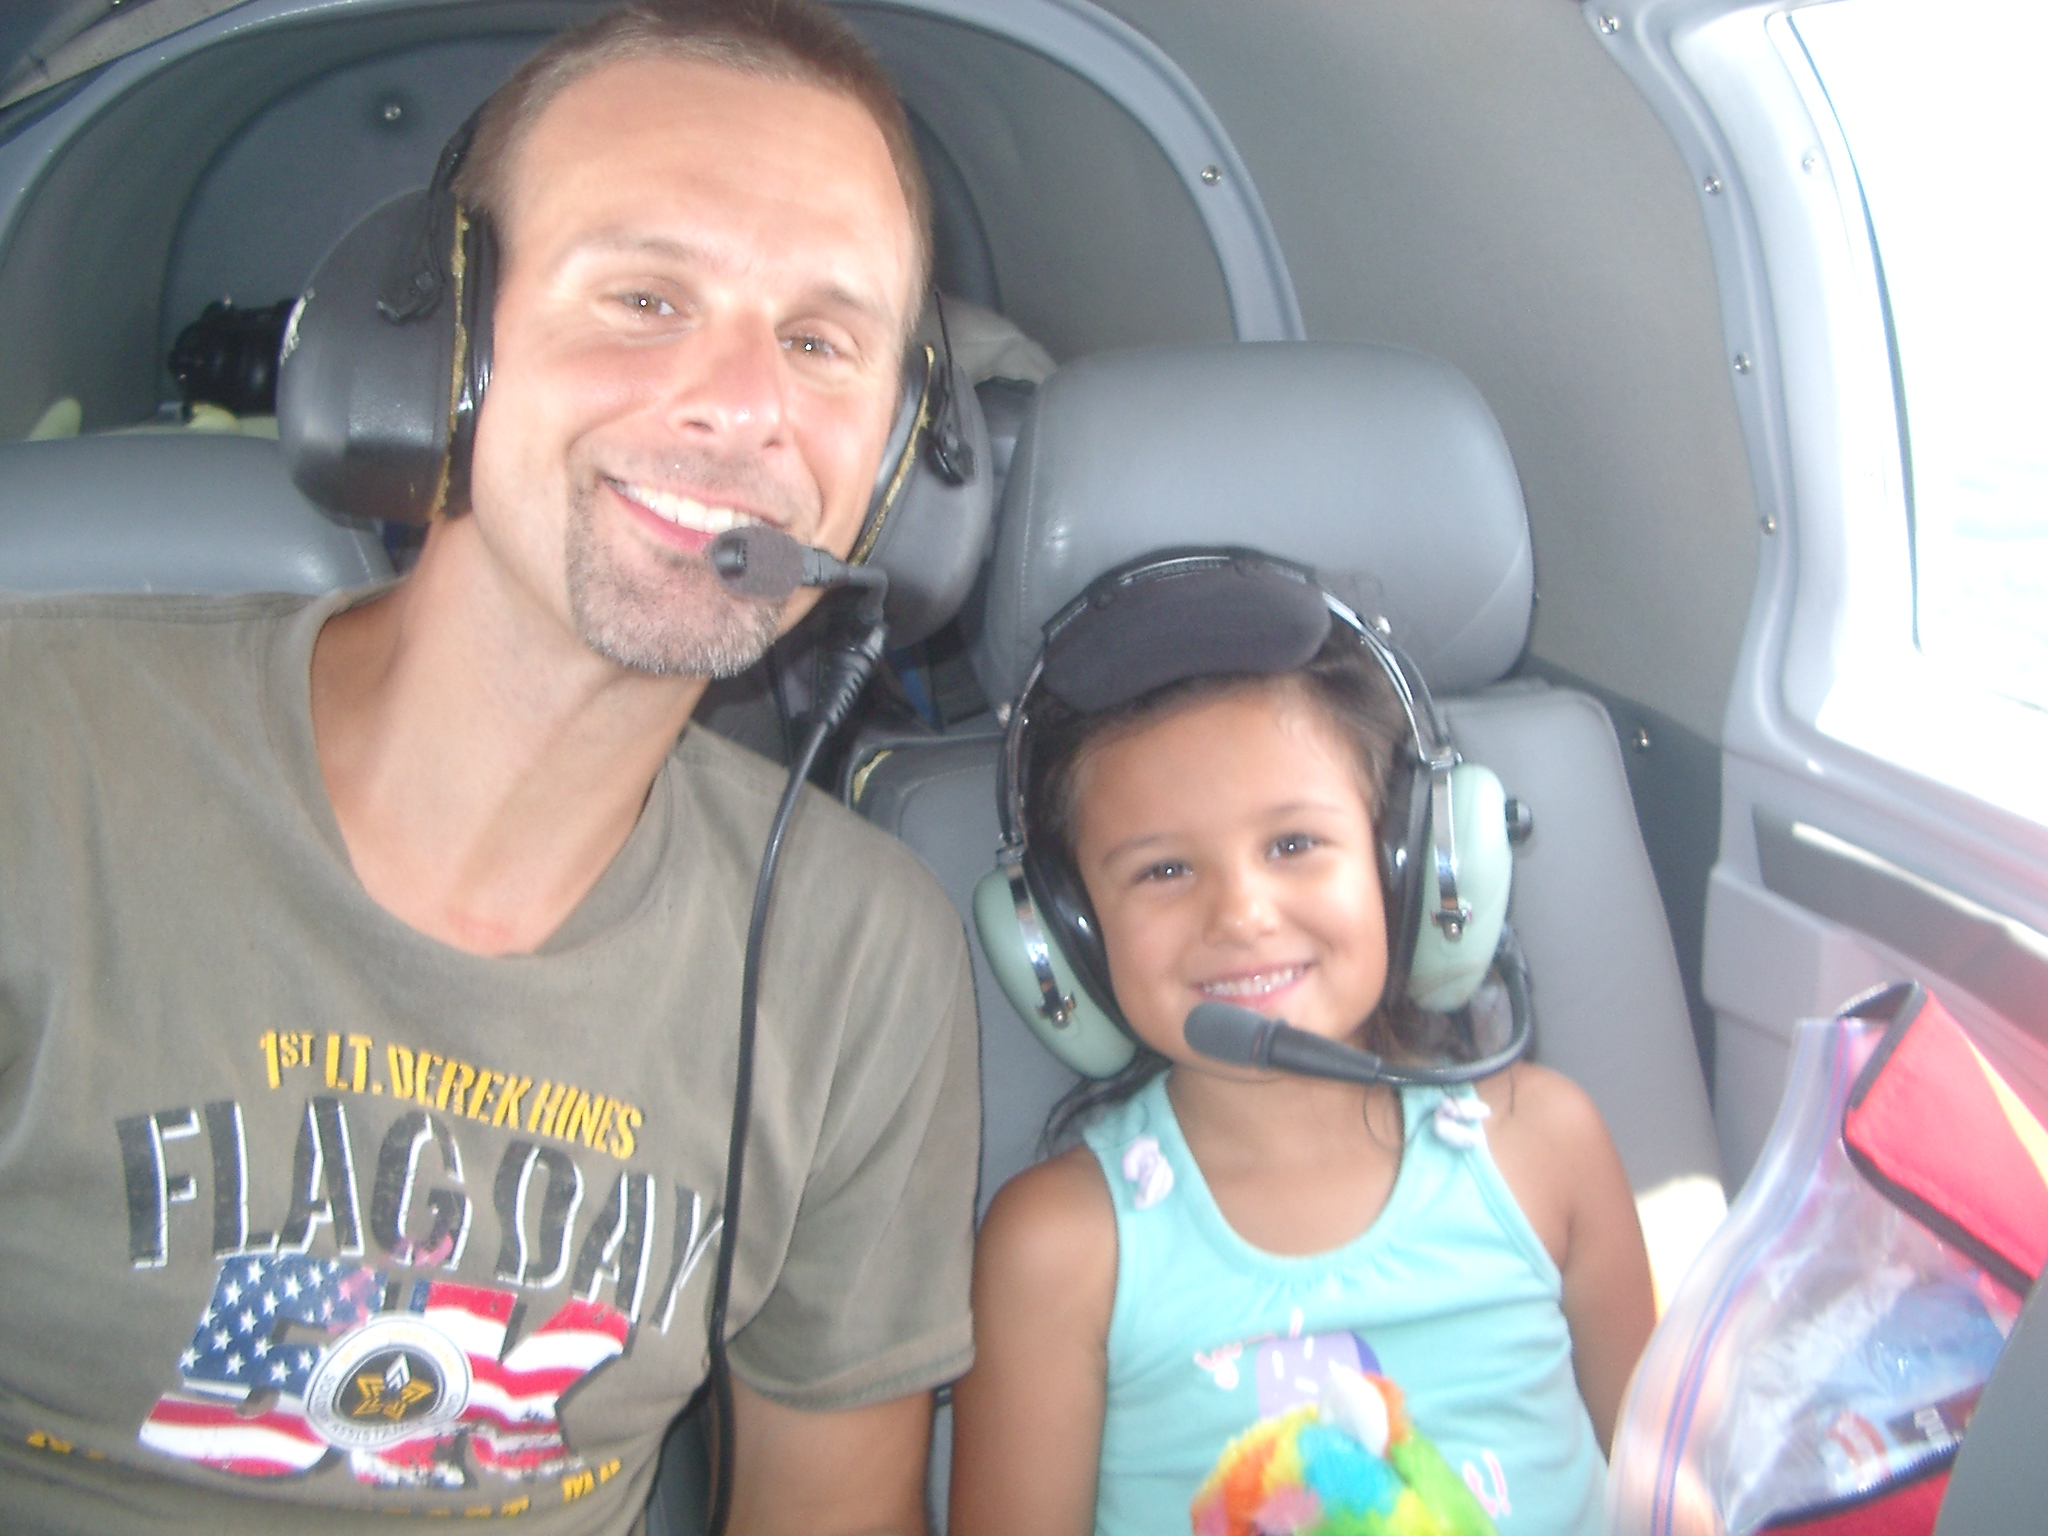 chris-and-christina-n-being-flown-by-pilot-charles-george